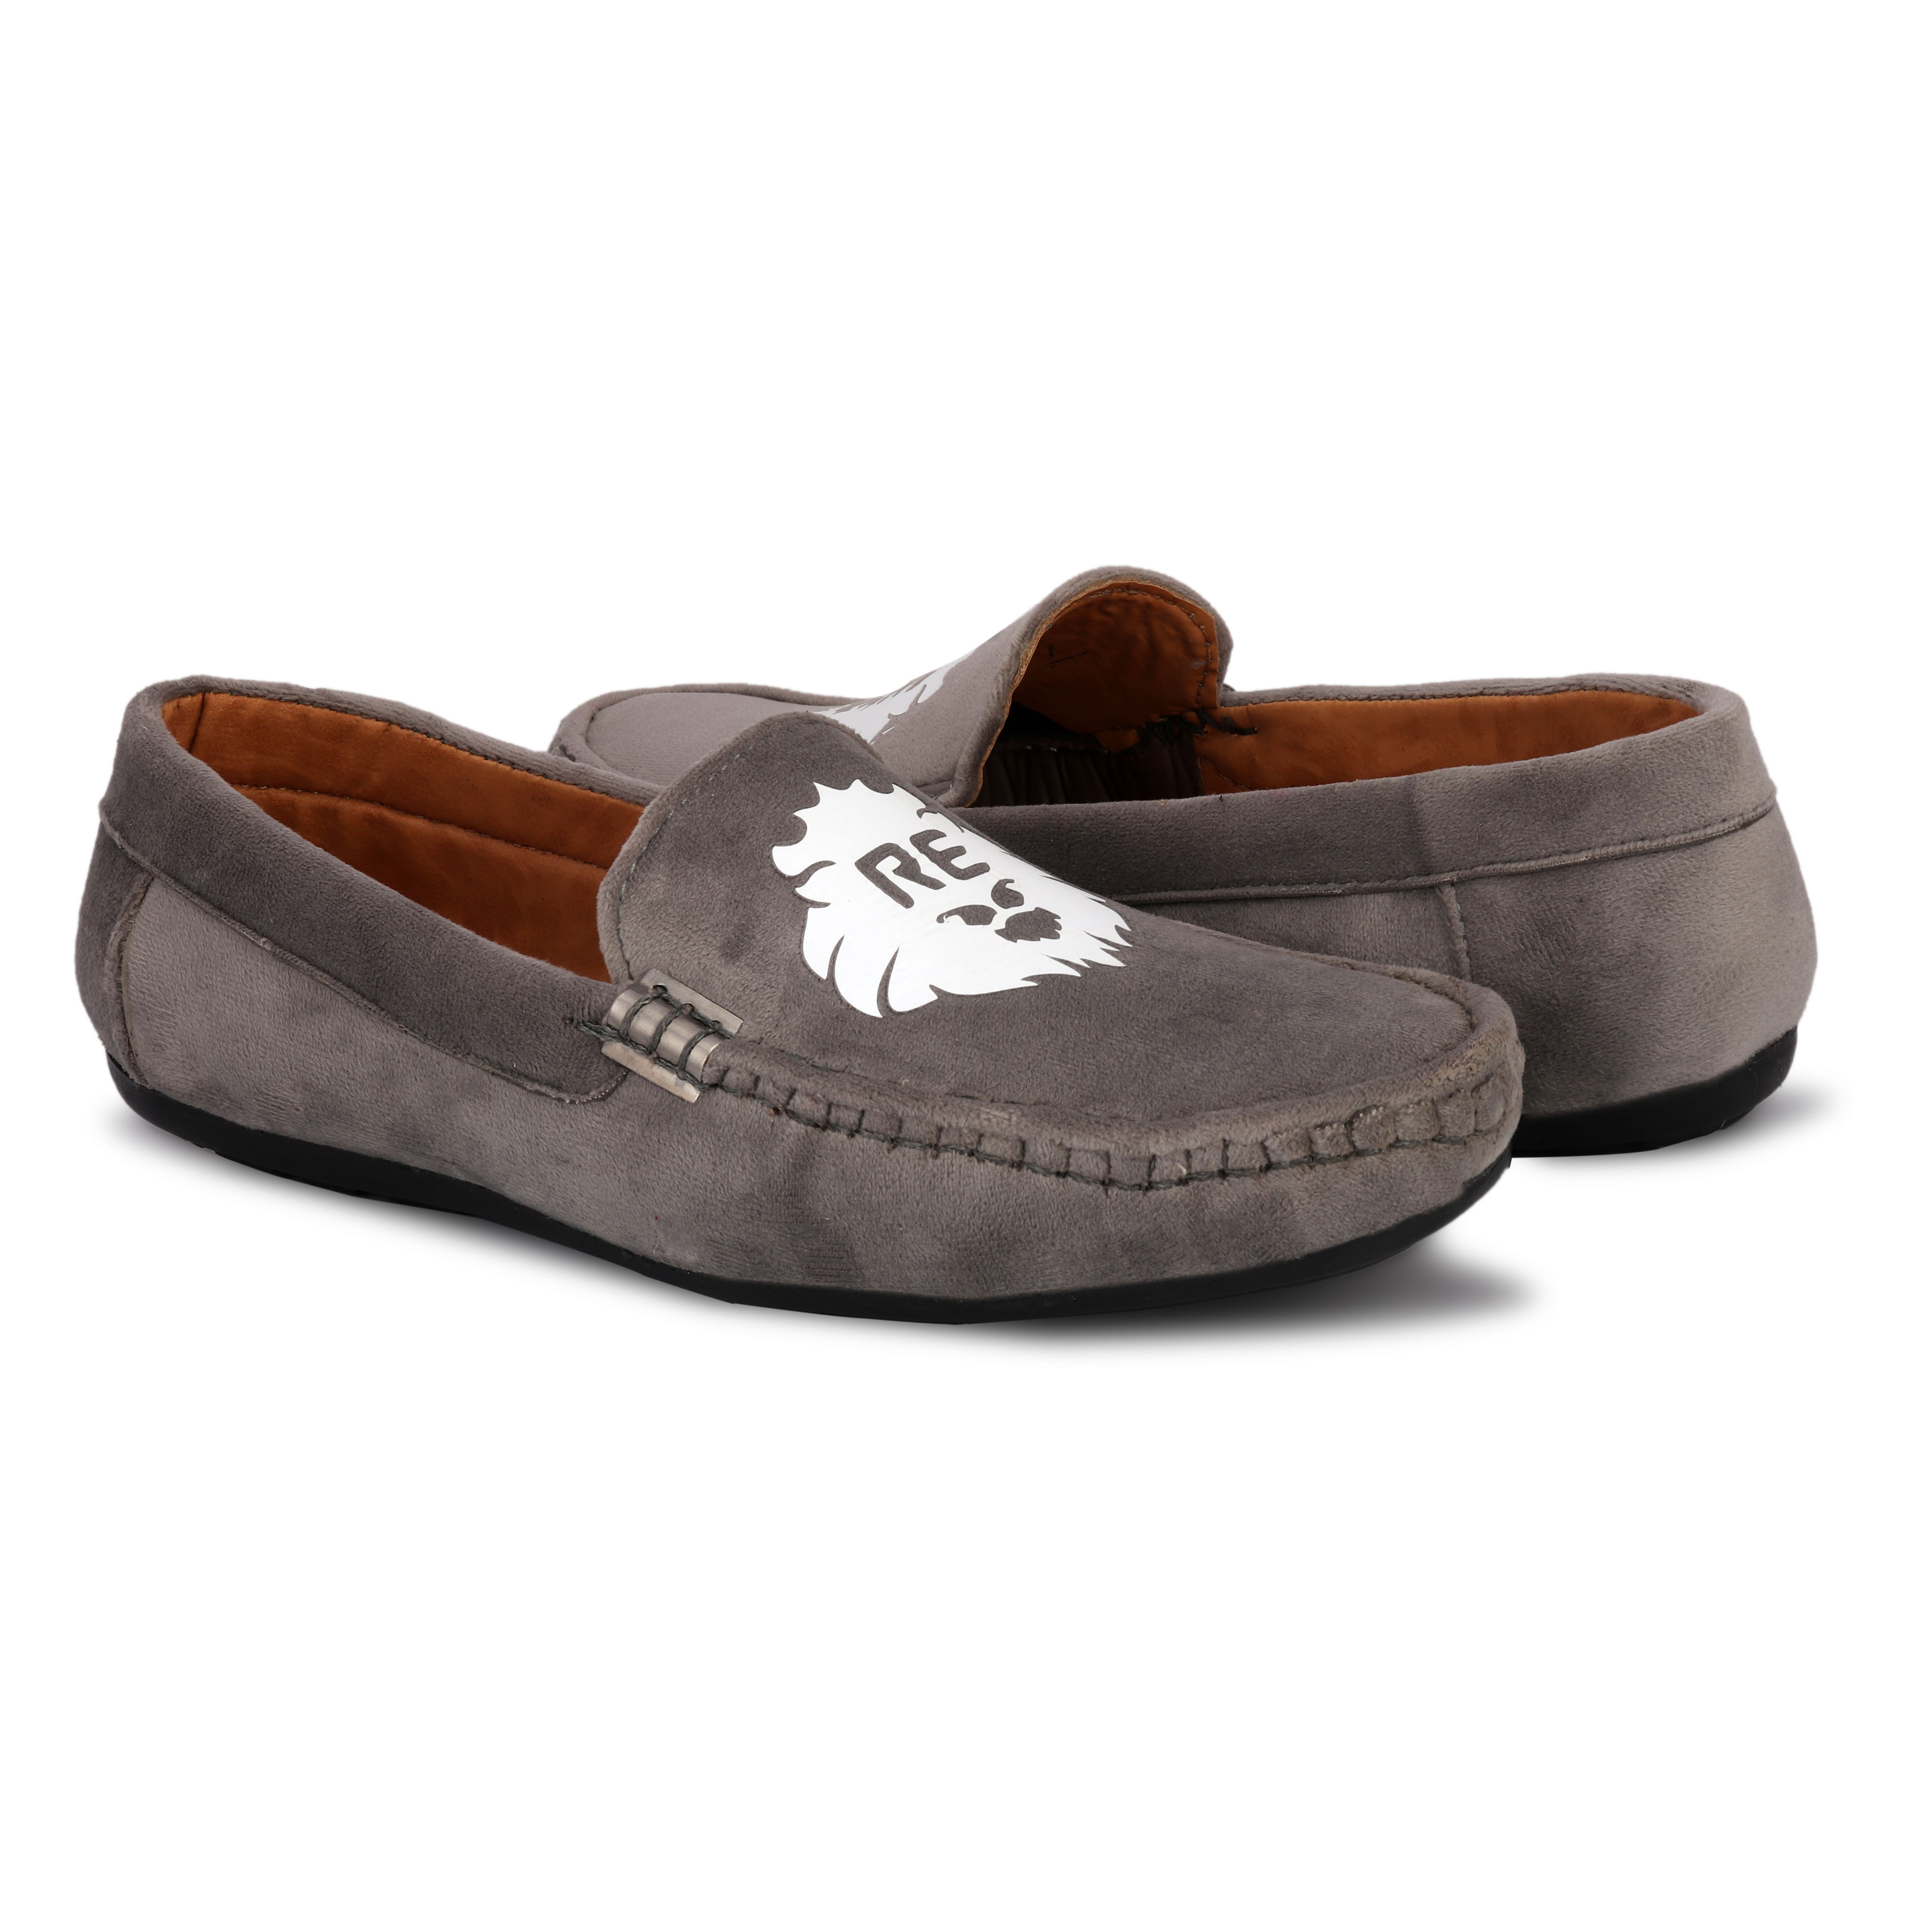 BRIFAR COMFORTABLE & TRENDY LOAFERS SHOES ARE RELIABLE FOR ANY BFL0795GRY (GERY, 6-9, PAIR'S)